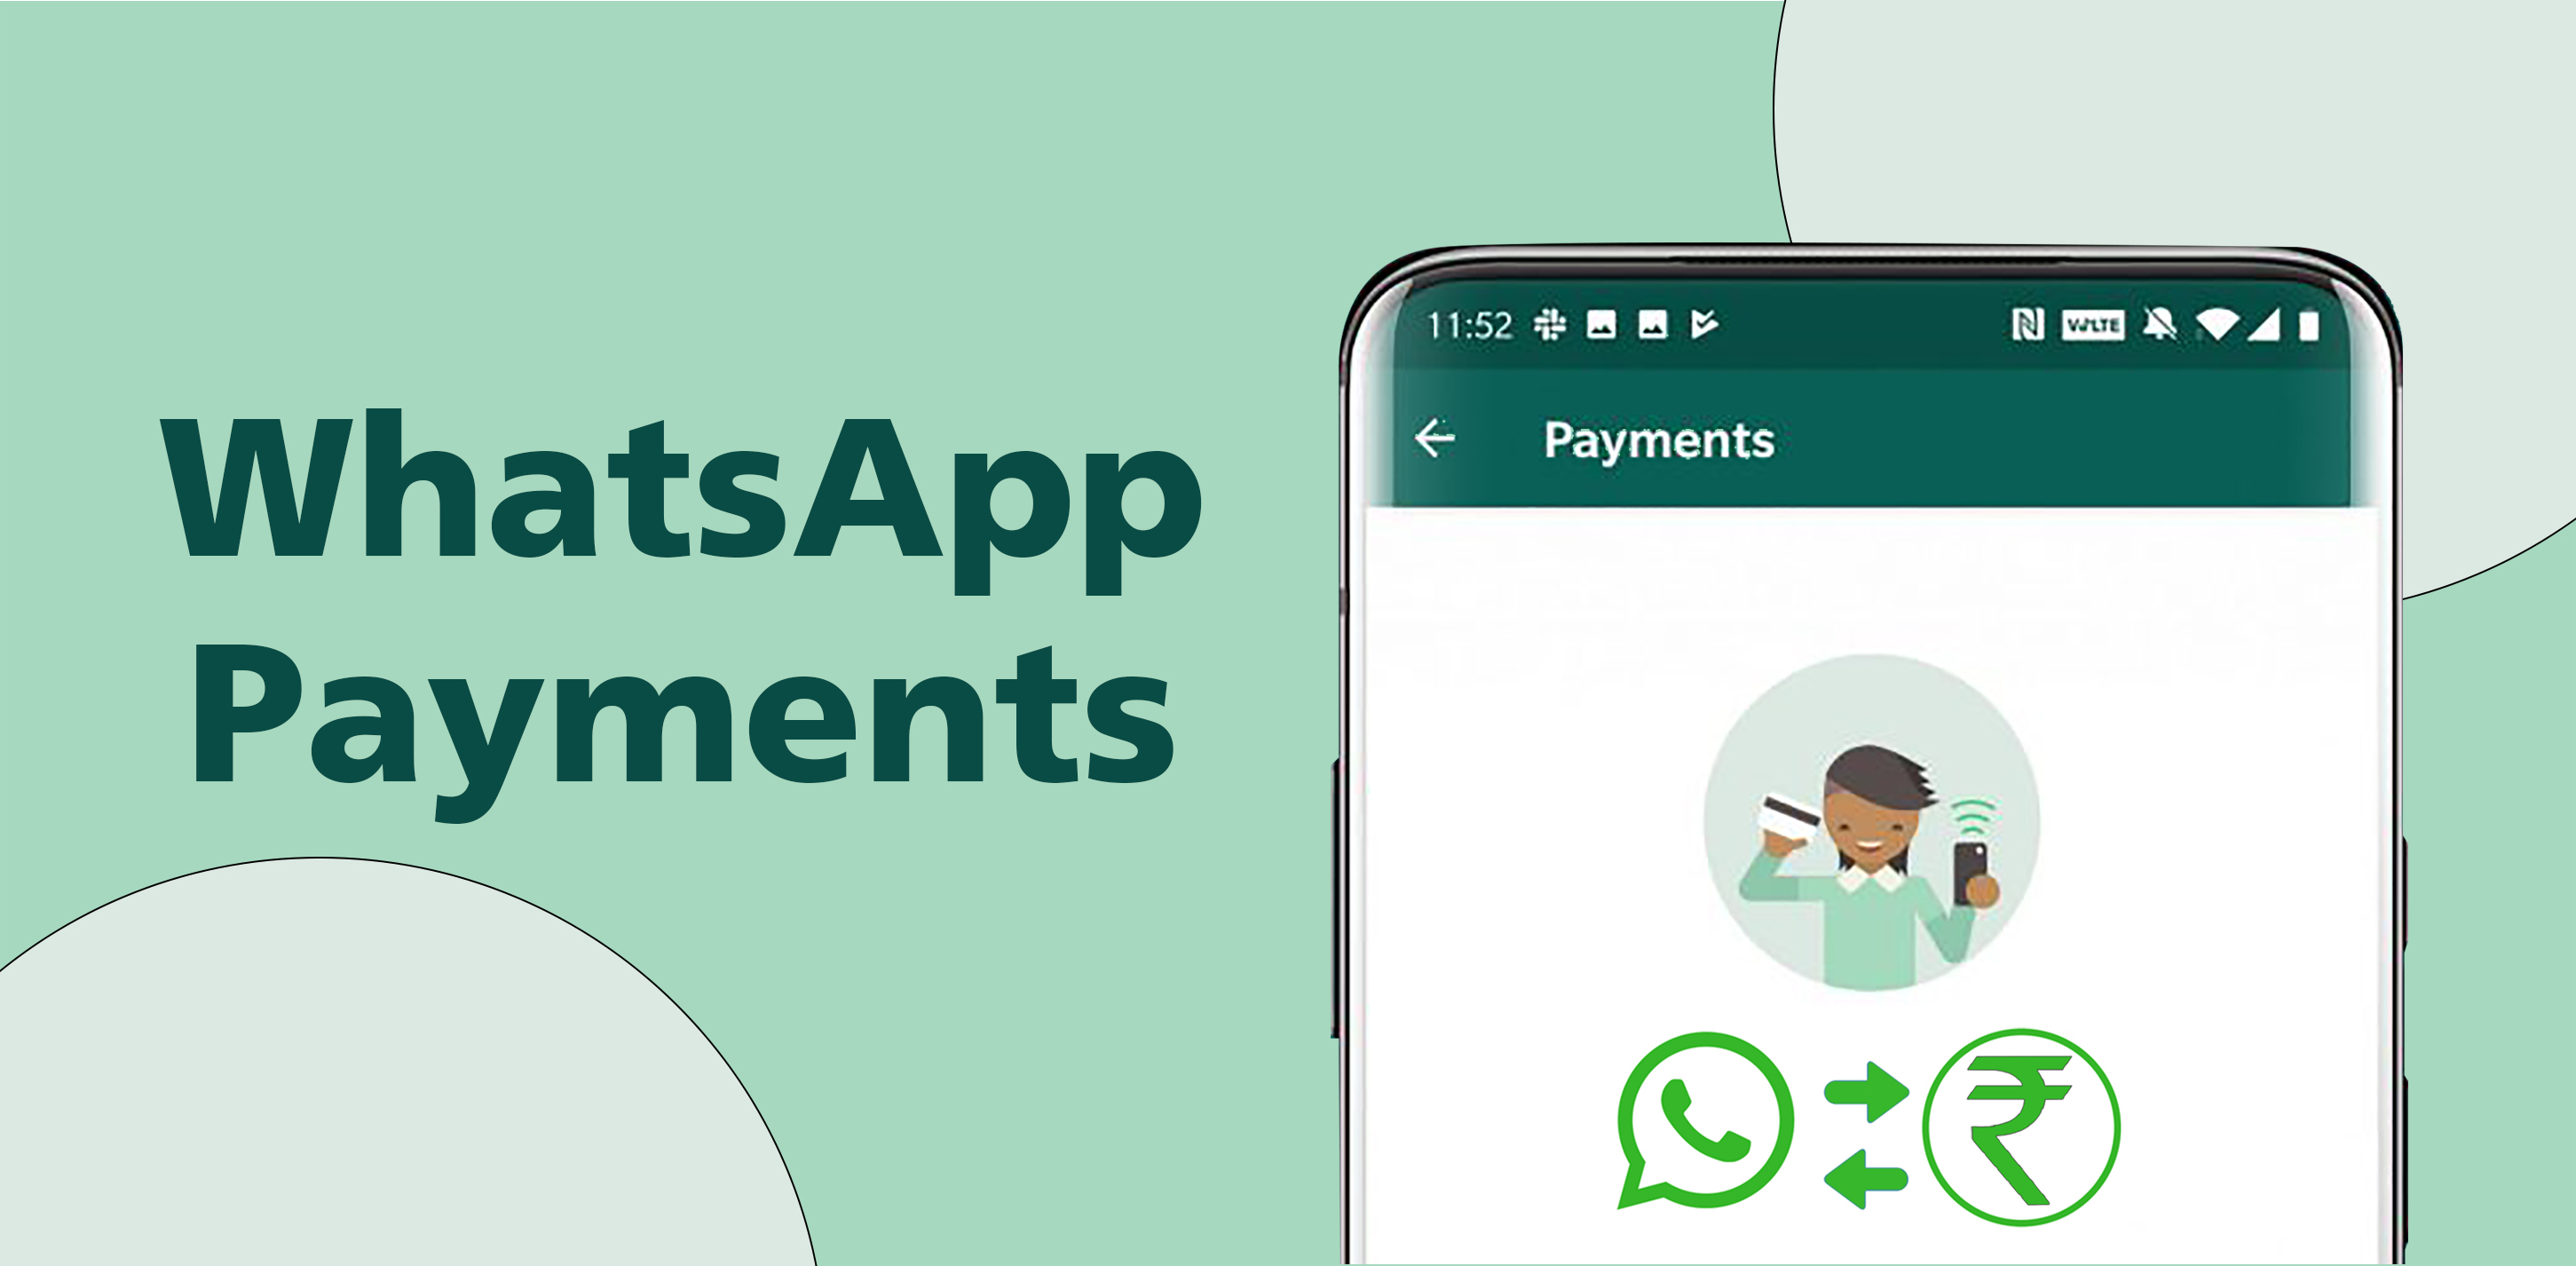 WhatsApp to Launch Digital Payment Service in India!